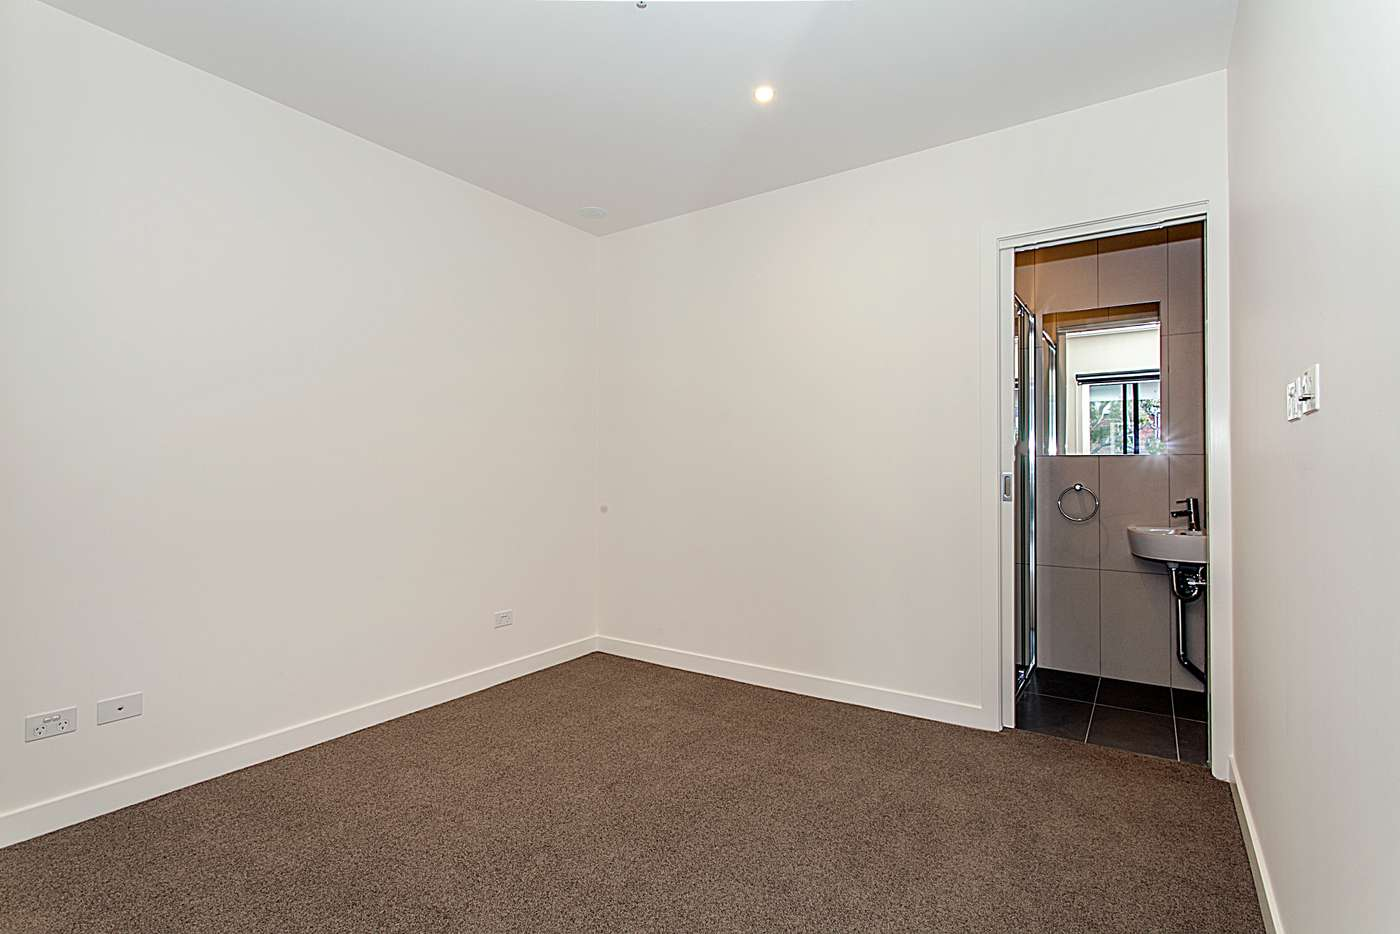 Sixth view of Homely apartment listing, 310/11 Stawell Street, North Melbourne VIC 3051